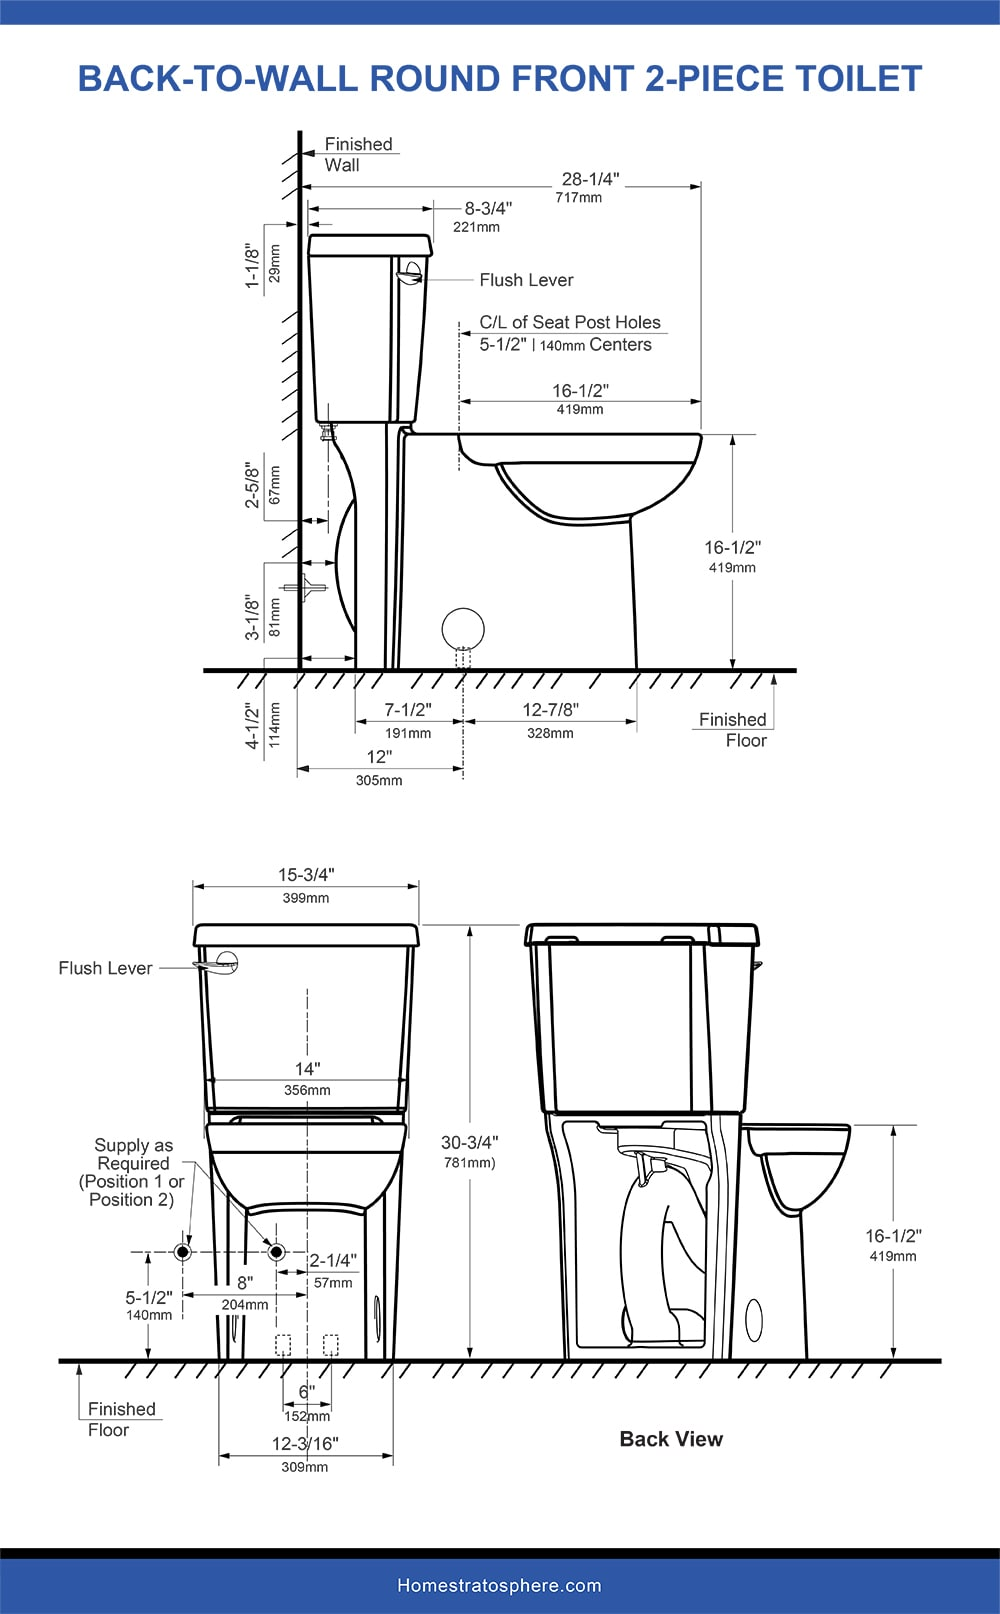 Back-to-Wall Round Front 2-Piece Toilet diagram